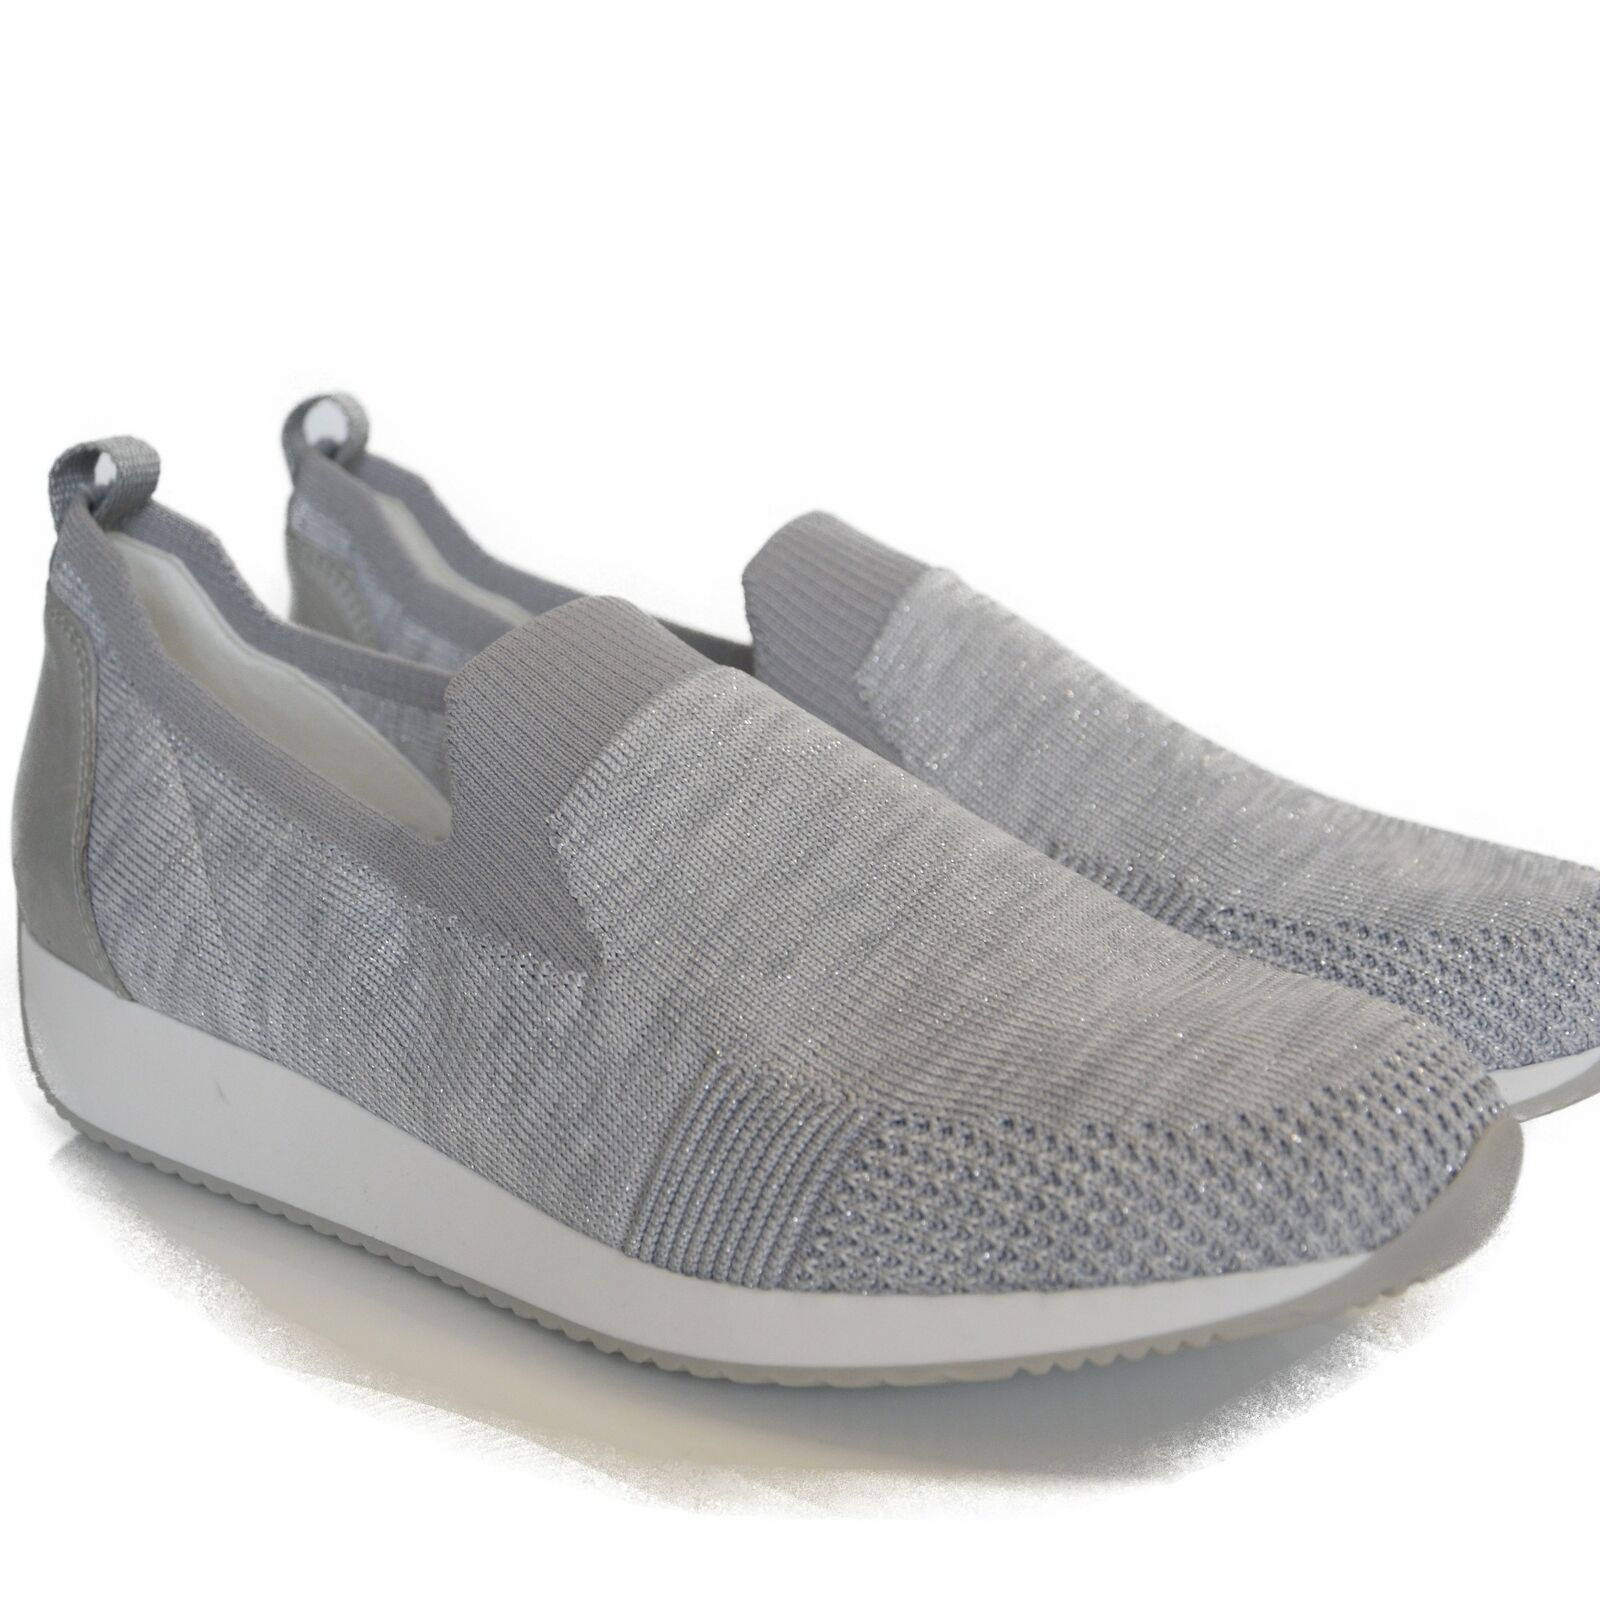 ARA MOCASSINI DONNA COMODI SLIP ON argento MULTI (GRIGIO)